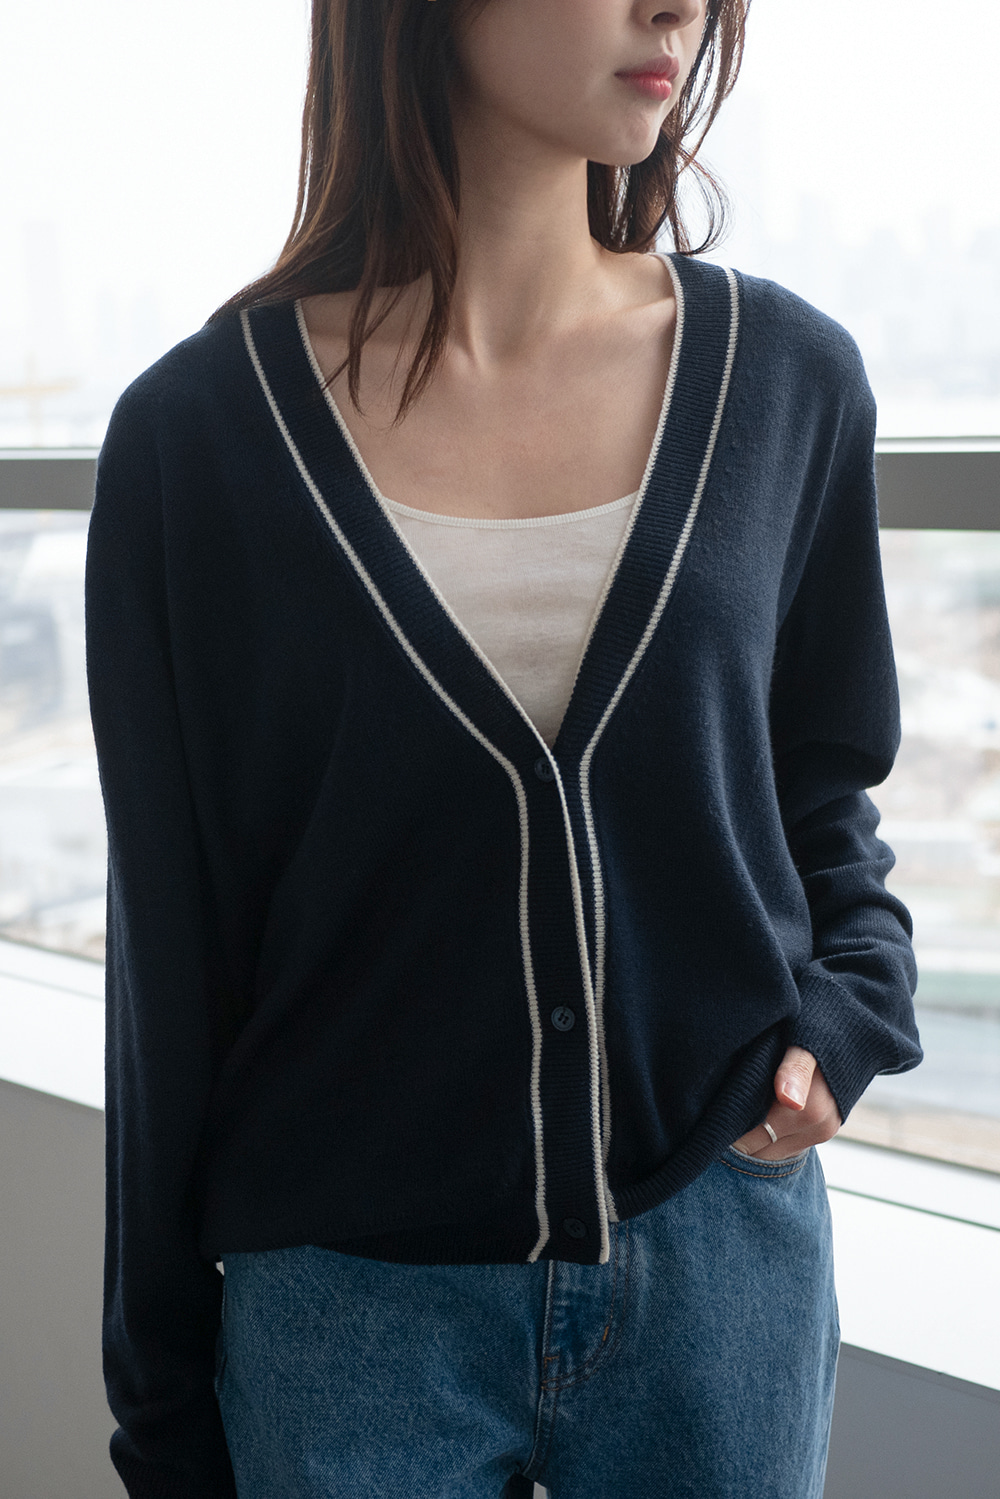 4362_Color Design Cardigan [ New Season / 10% DC ] 15일 PM 6 마감